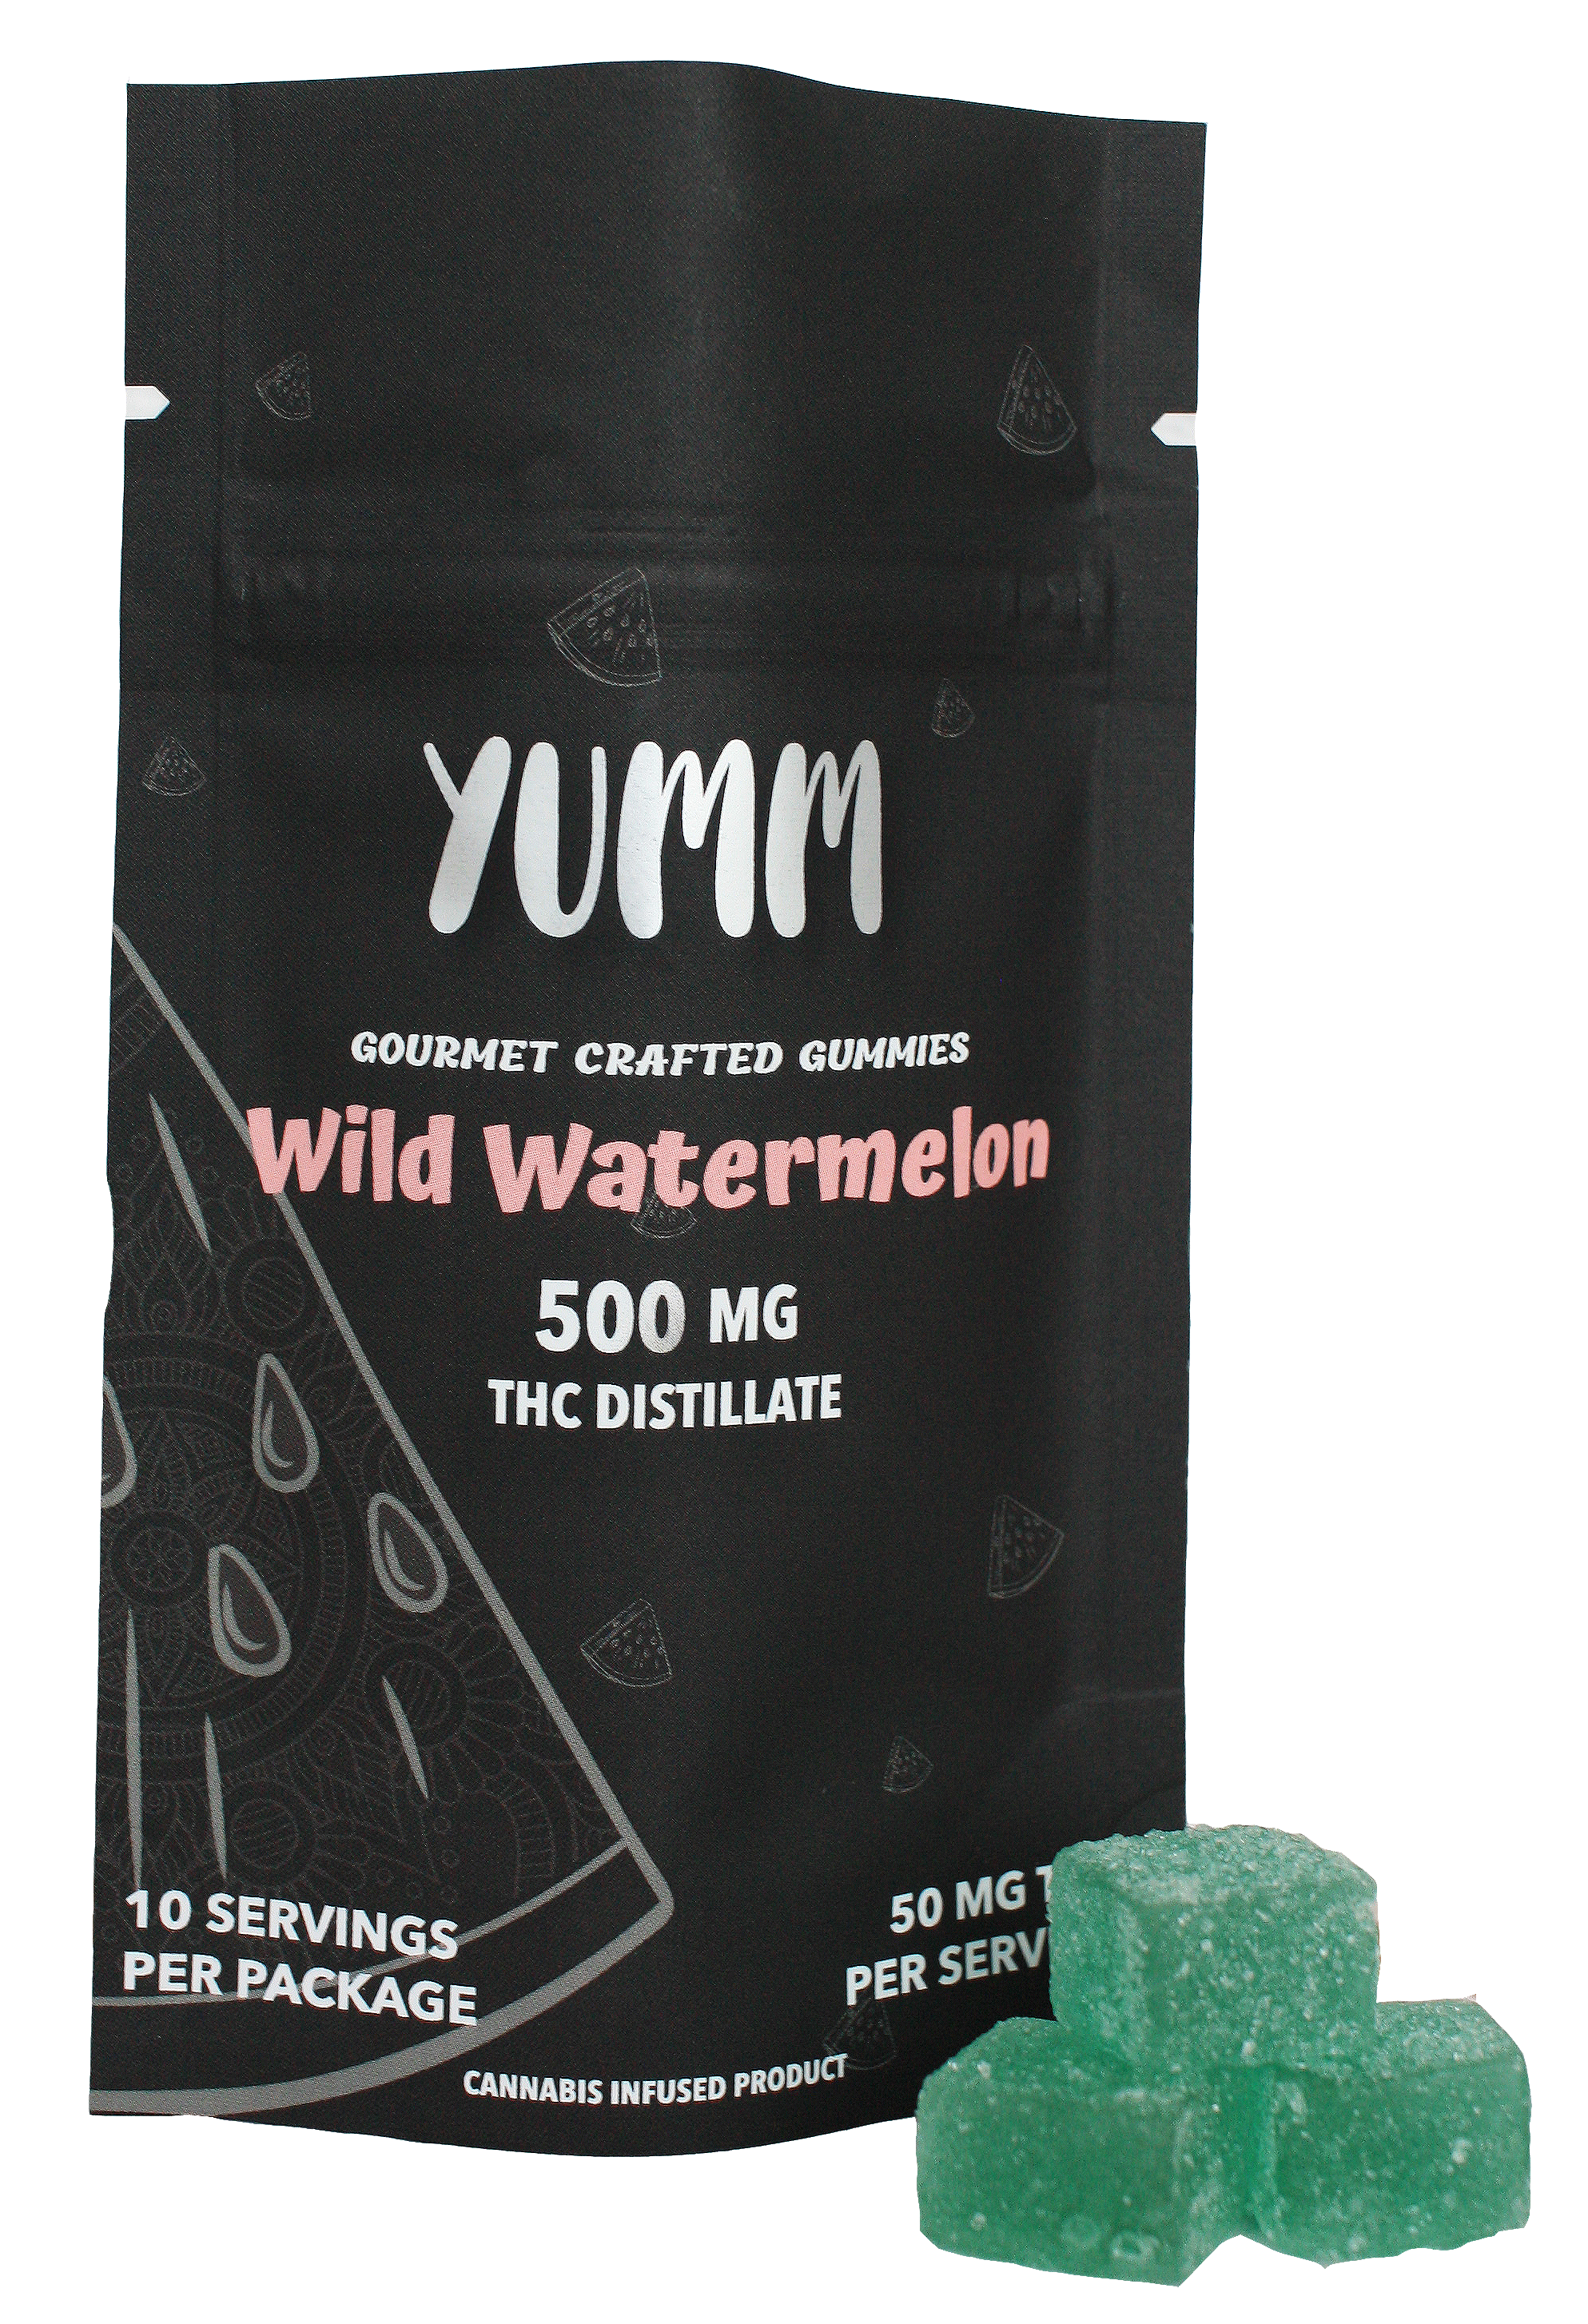 Wild Watermelon 500mg - YUMM